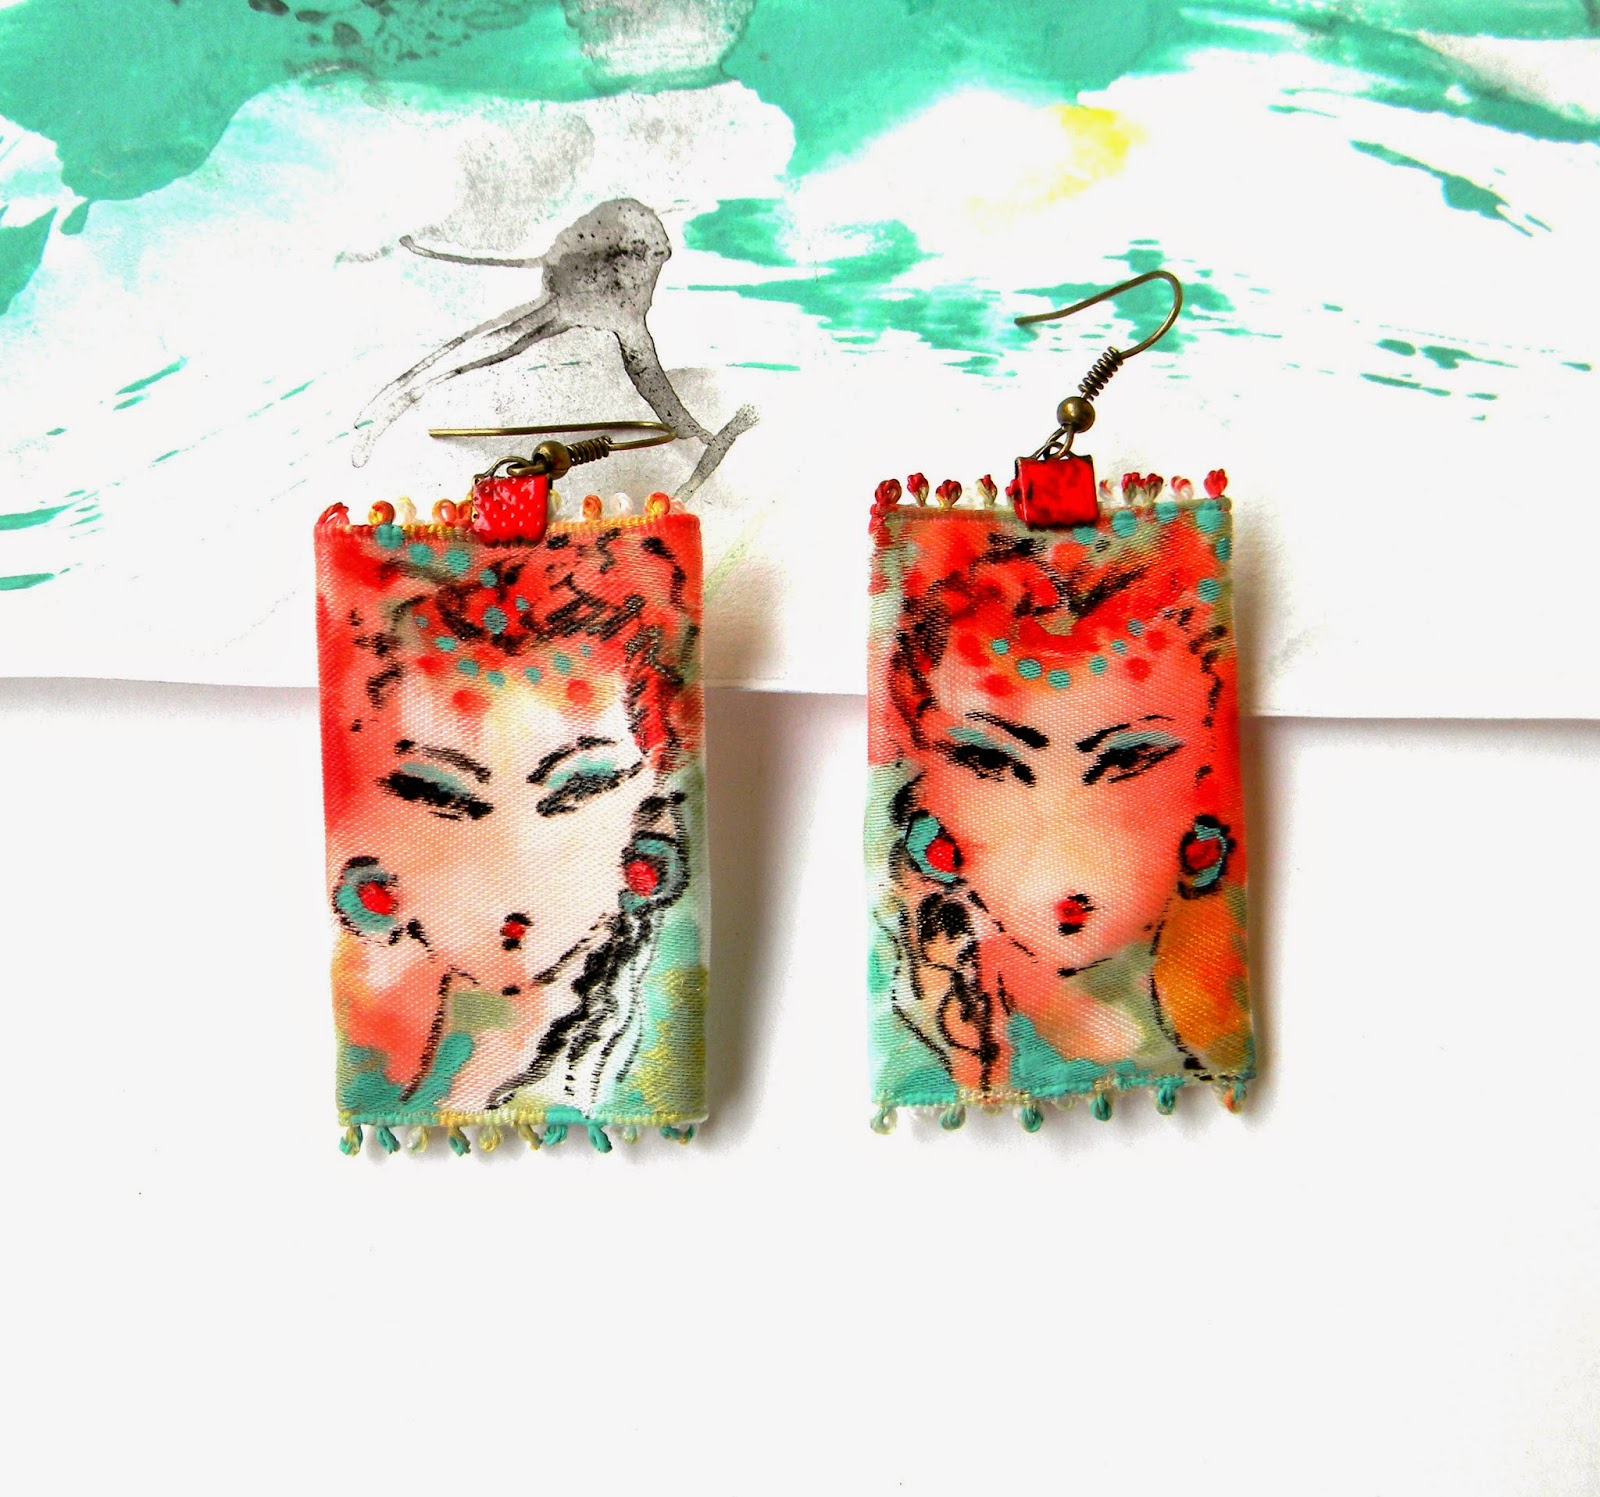 Textile Trim Earrings with Hand Painted Portraits, Original Fine Art Jewelry